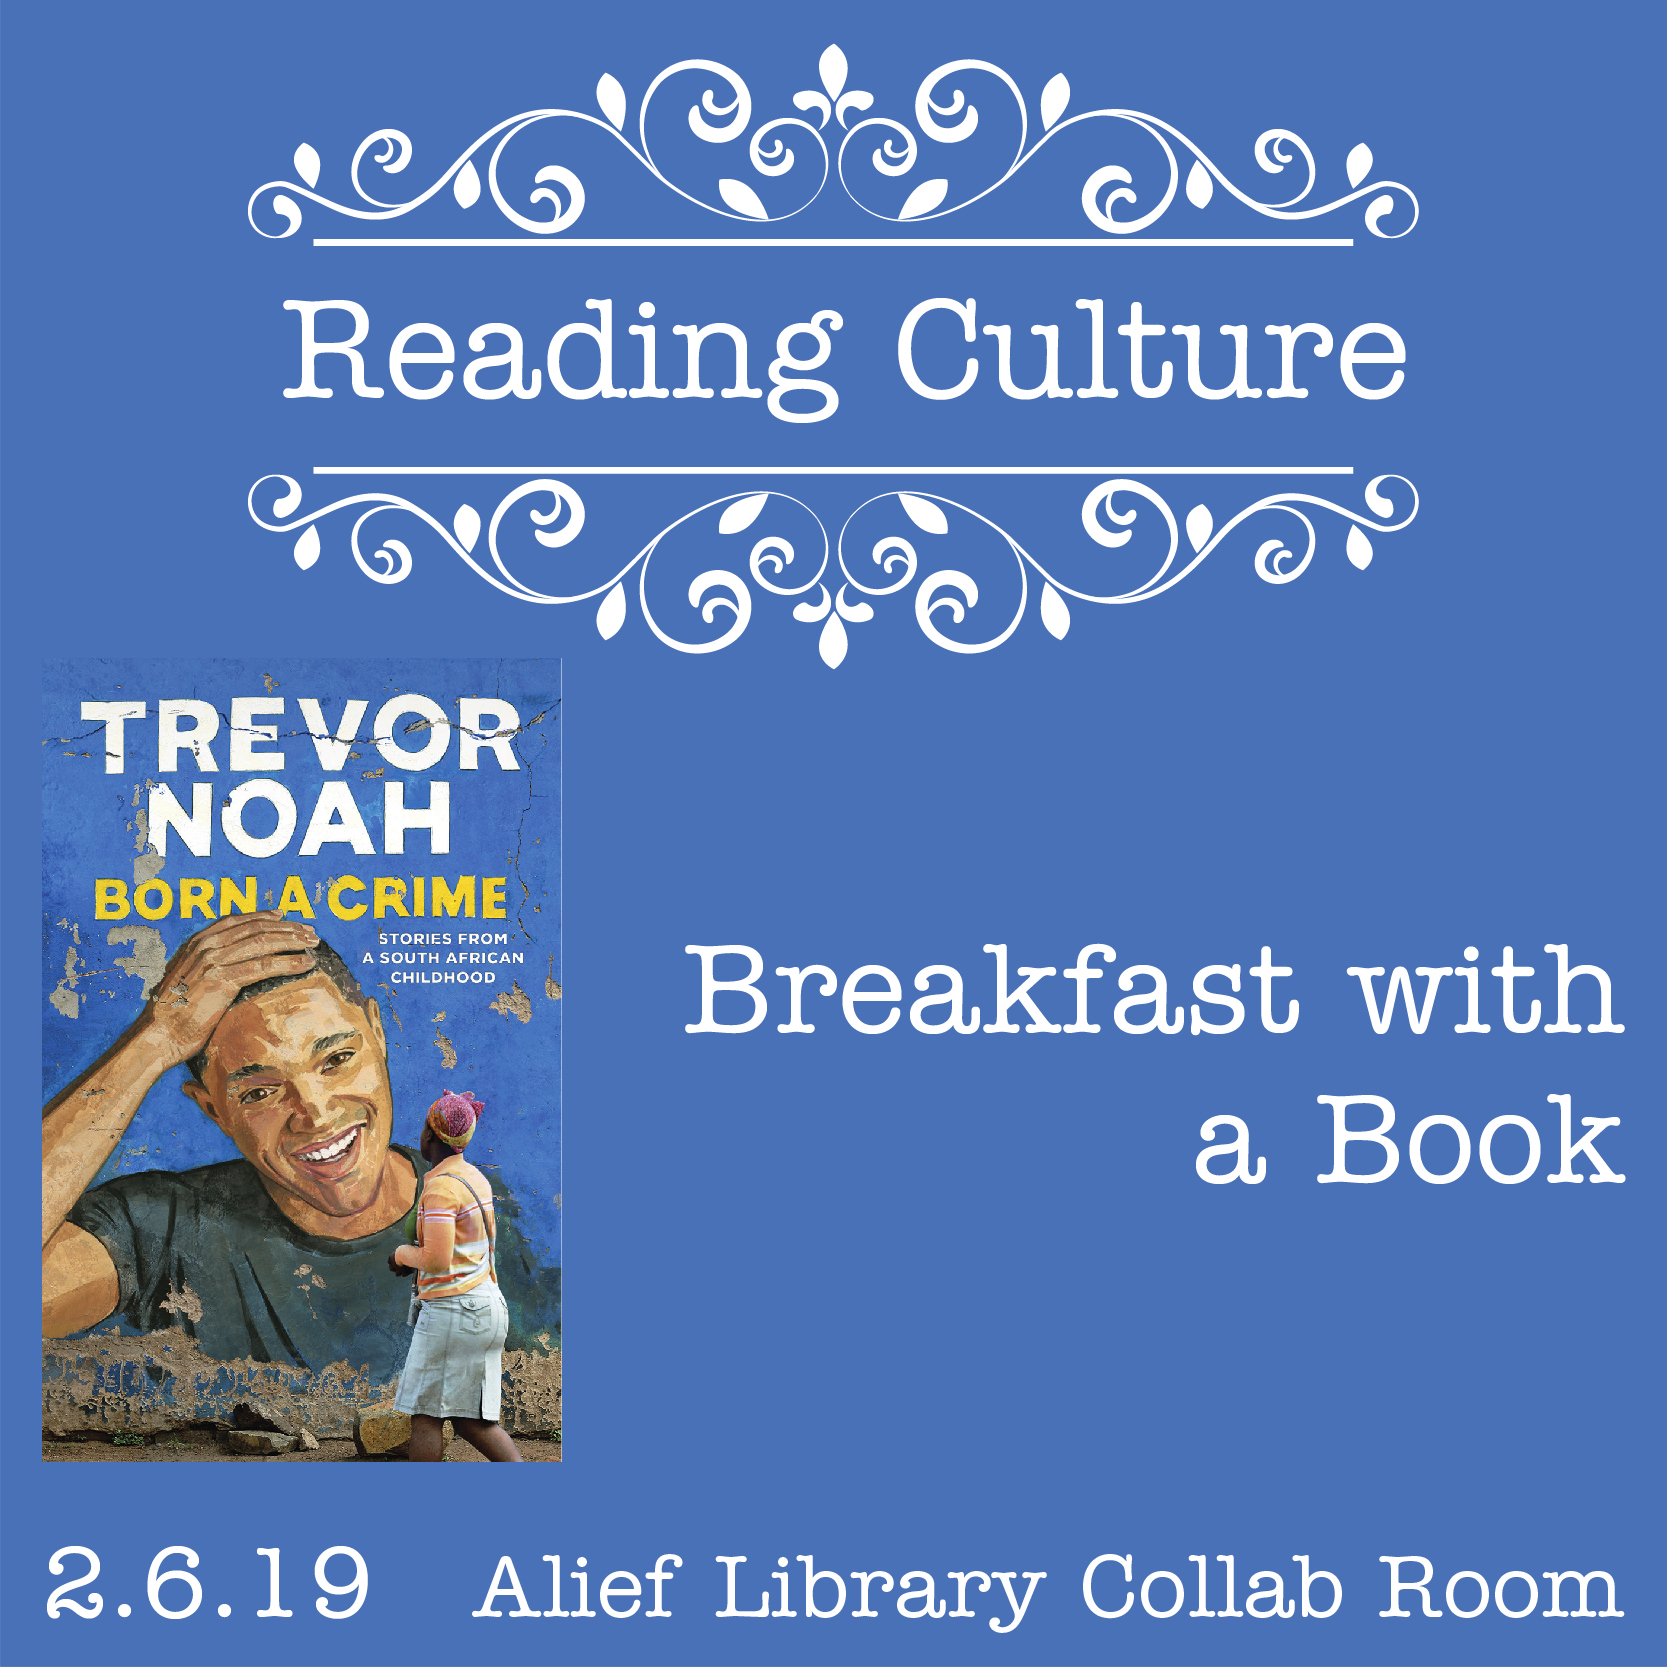 [AH] Reading Culture: Breakfast with a Book